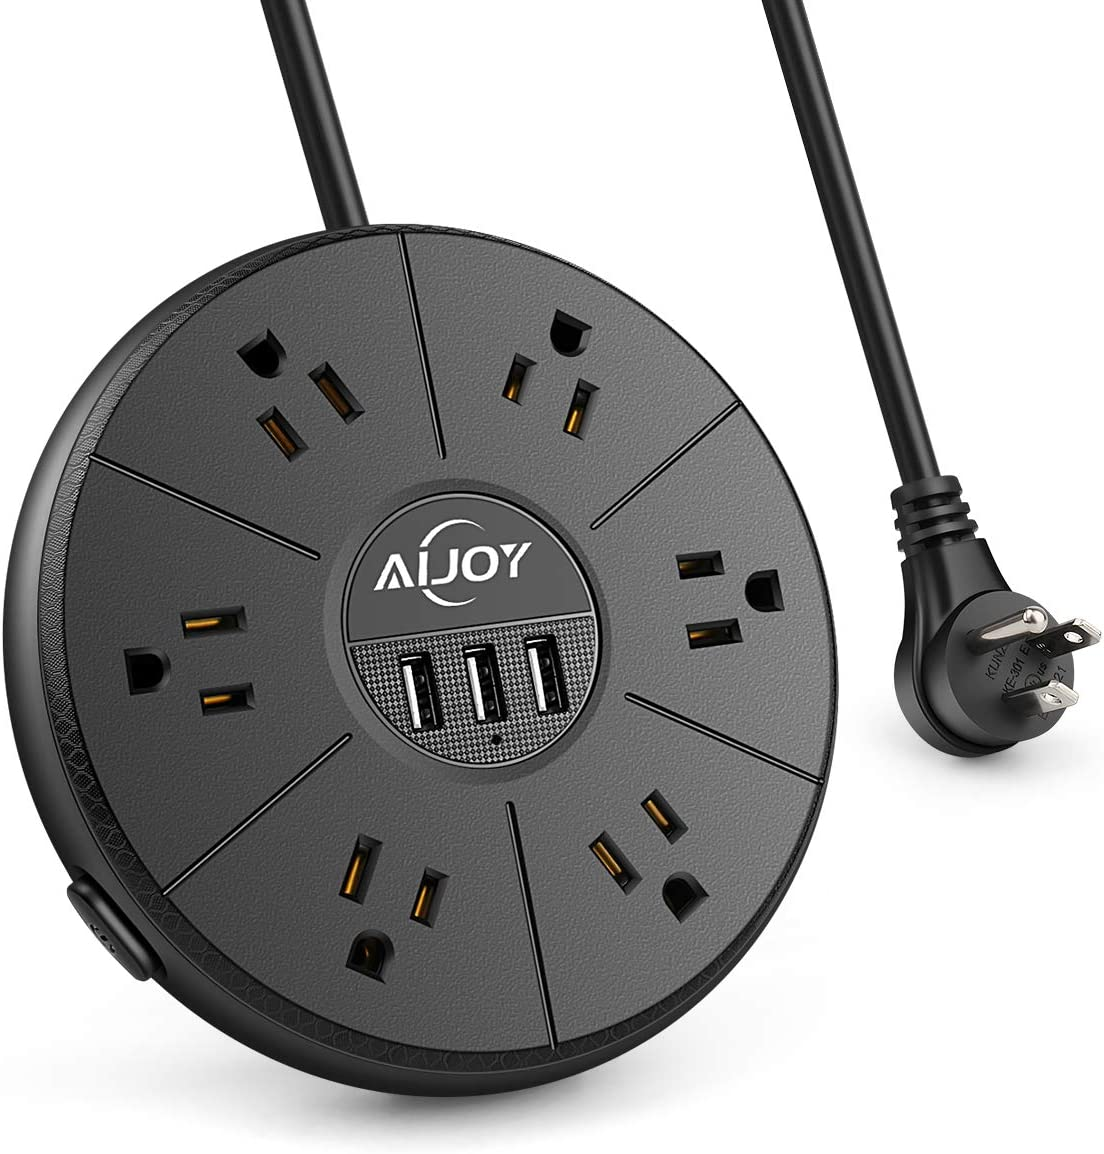 AiJoy Power Strip Surge Protector Socket 6 AC Outlets with 3 USB Ports Fast Charging 6.5 Ft Extension Cord Compact Size